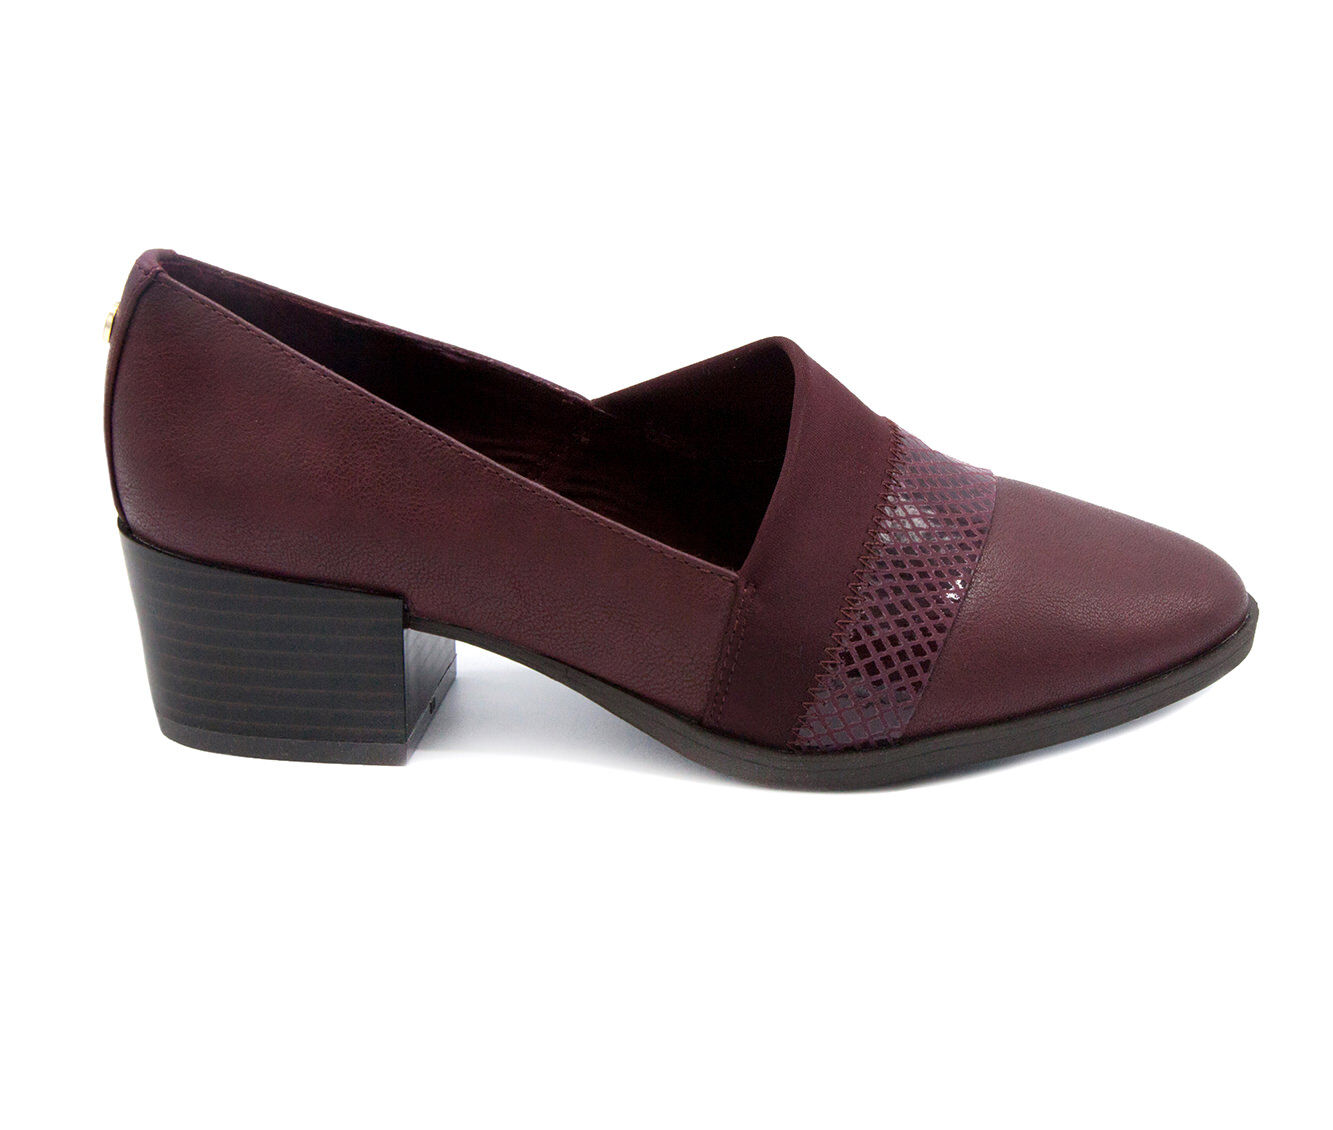 Women's Gloria Vanderbilt Pippa Shoes Wine